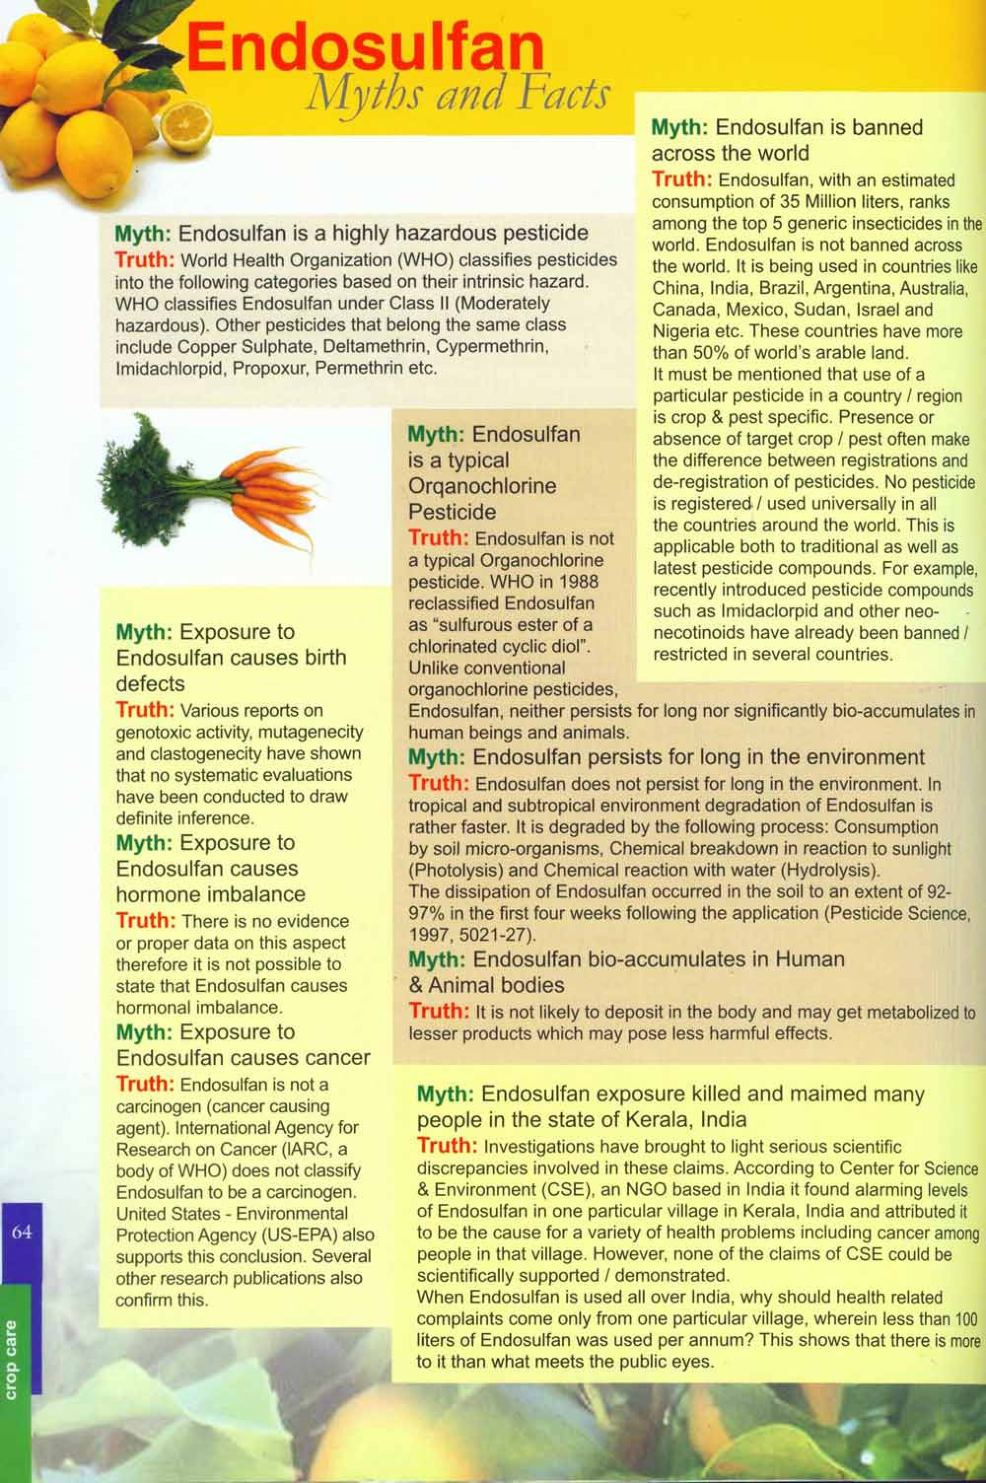 problems caused by endosalphan pesticide